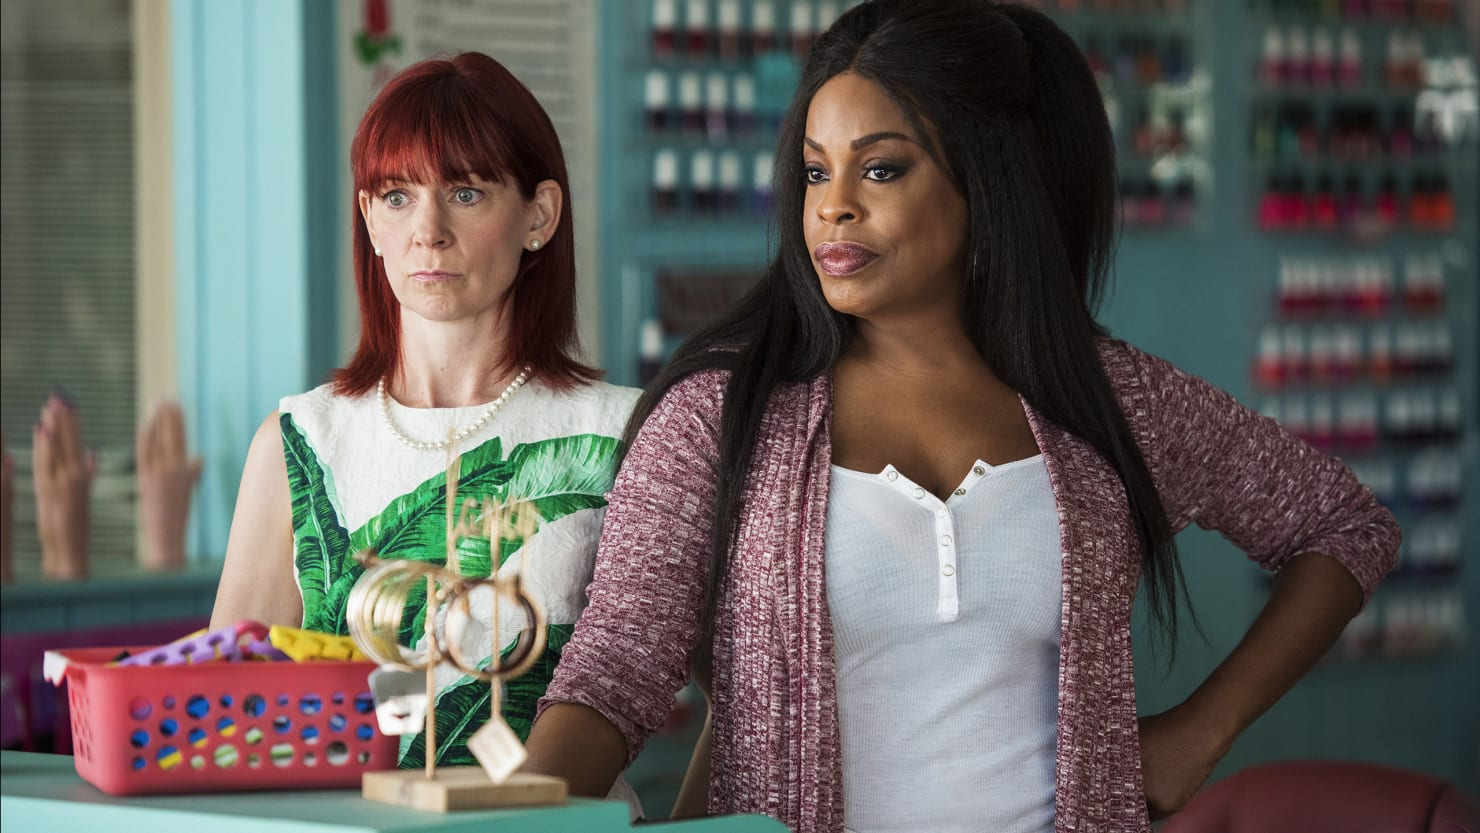 'Claws': The New 'Breaking Bad' Takes Place at a Nail Salon